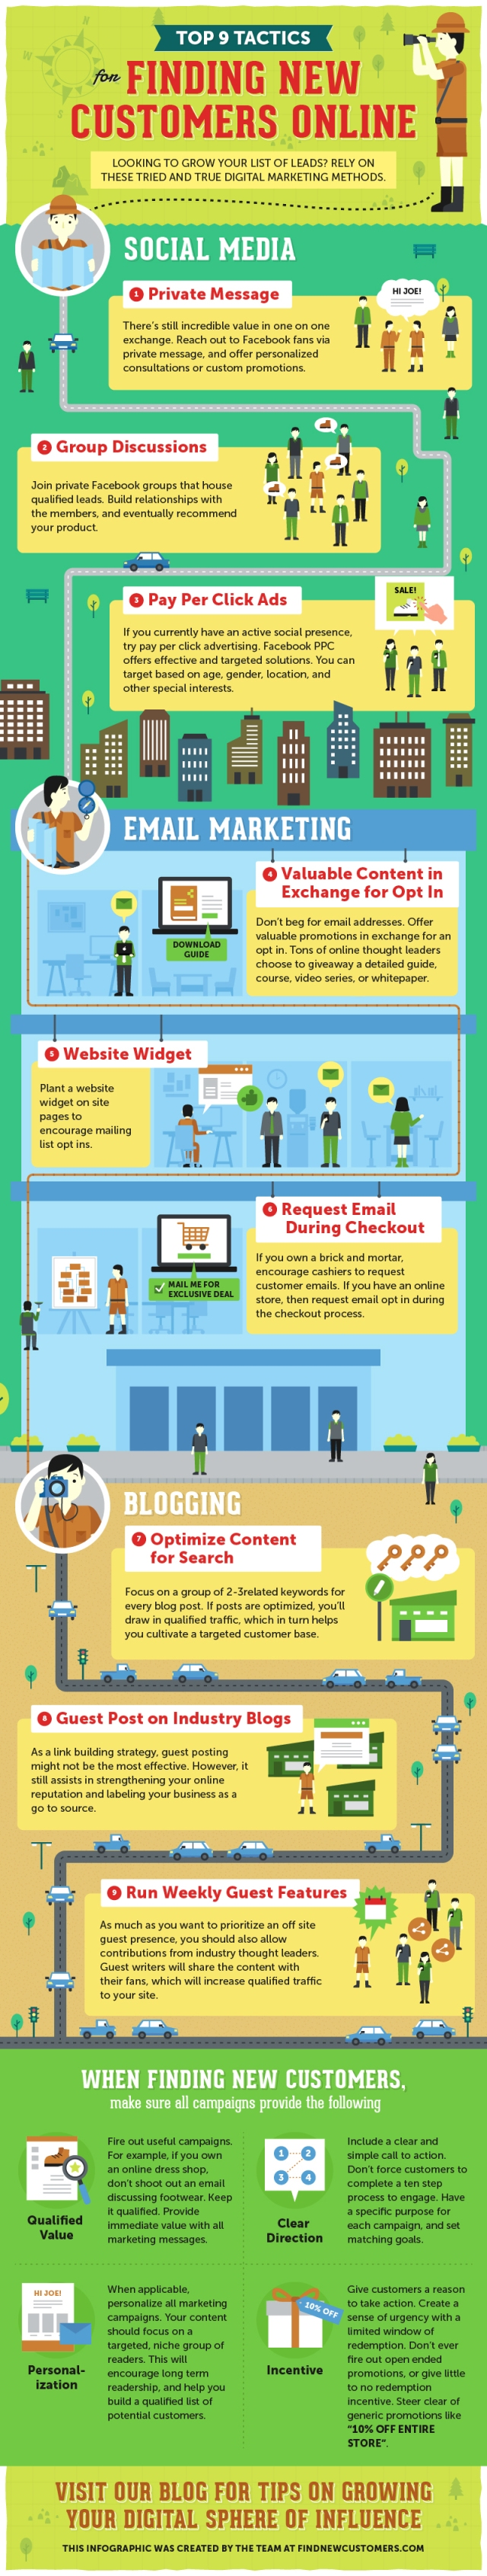 Starting a New Business Here's 9 Top Ways to Find New Customers Online